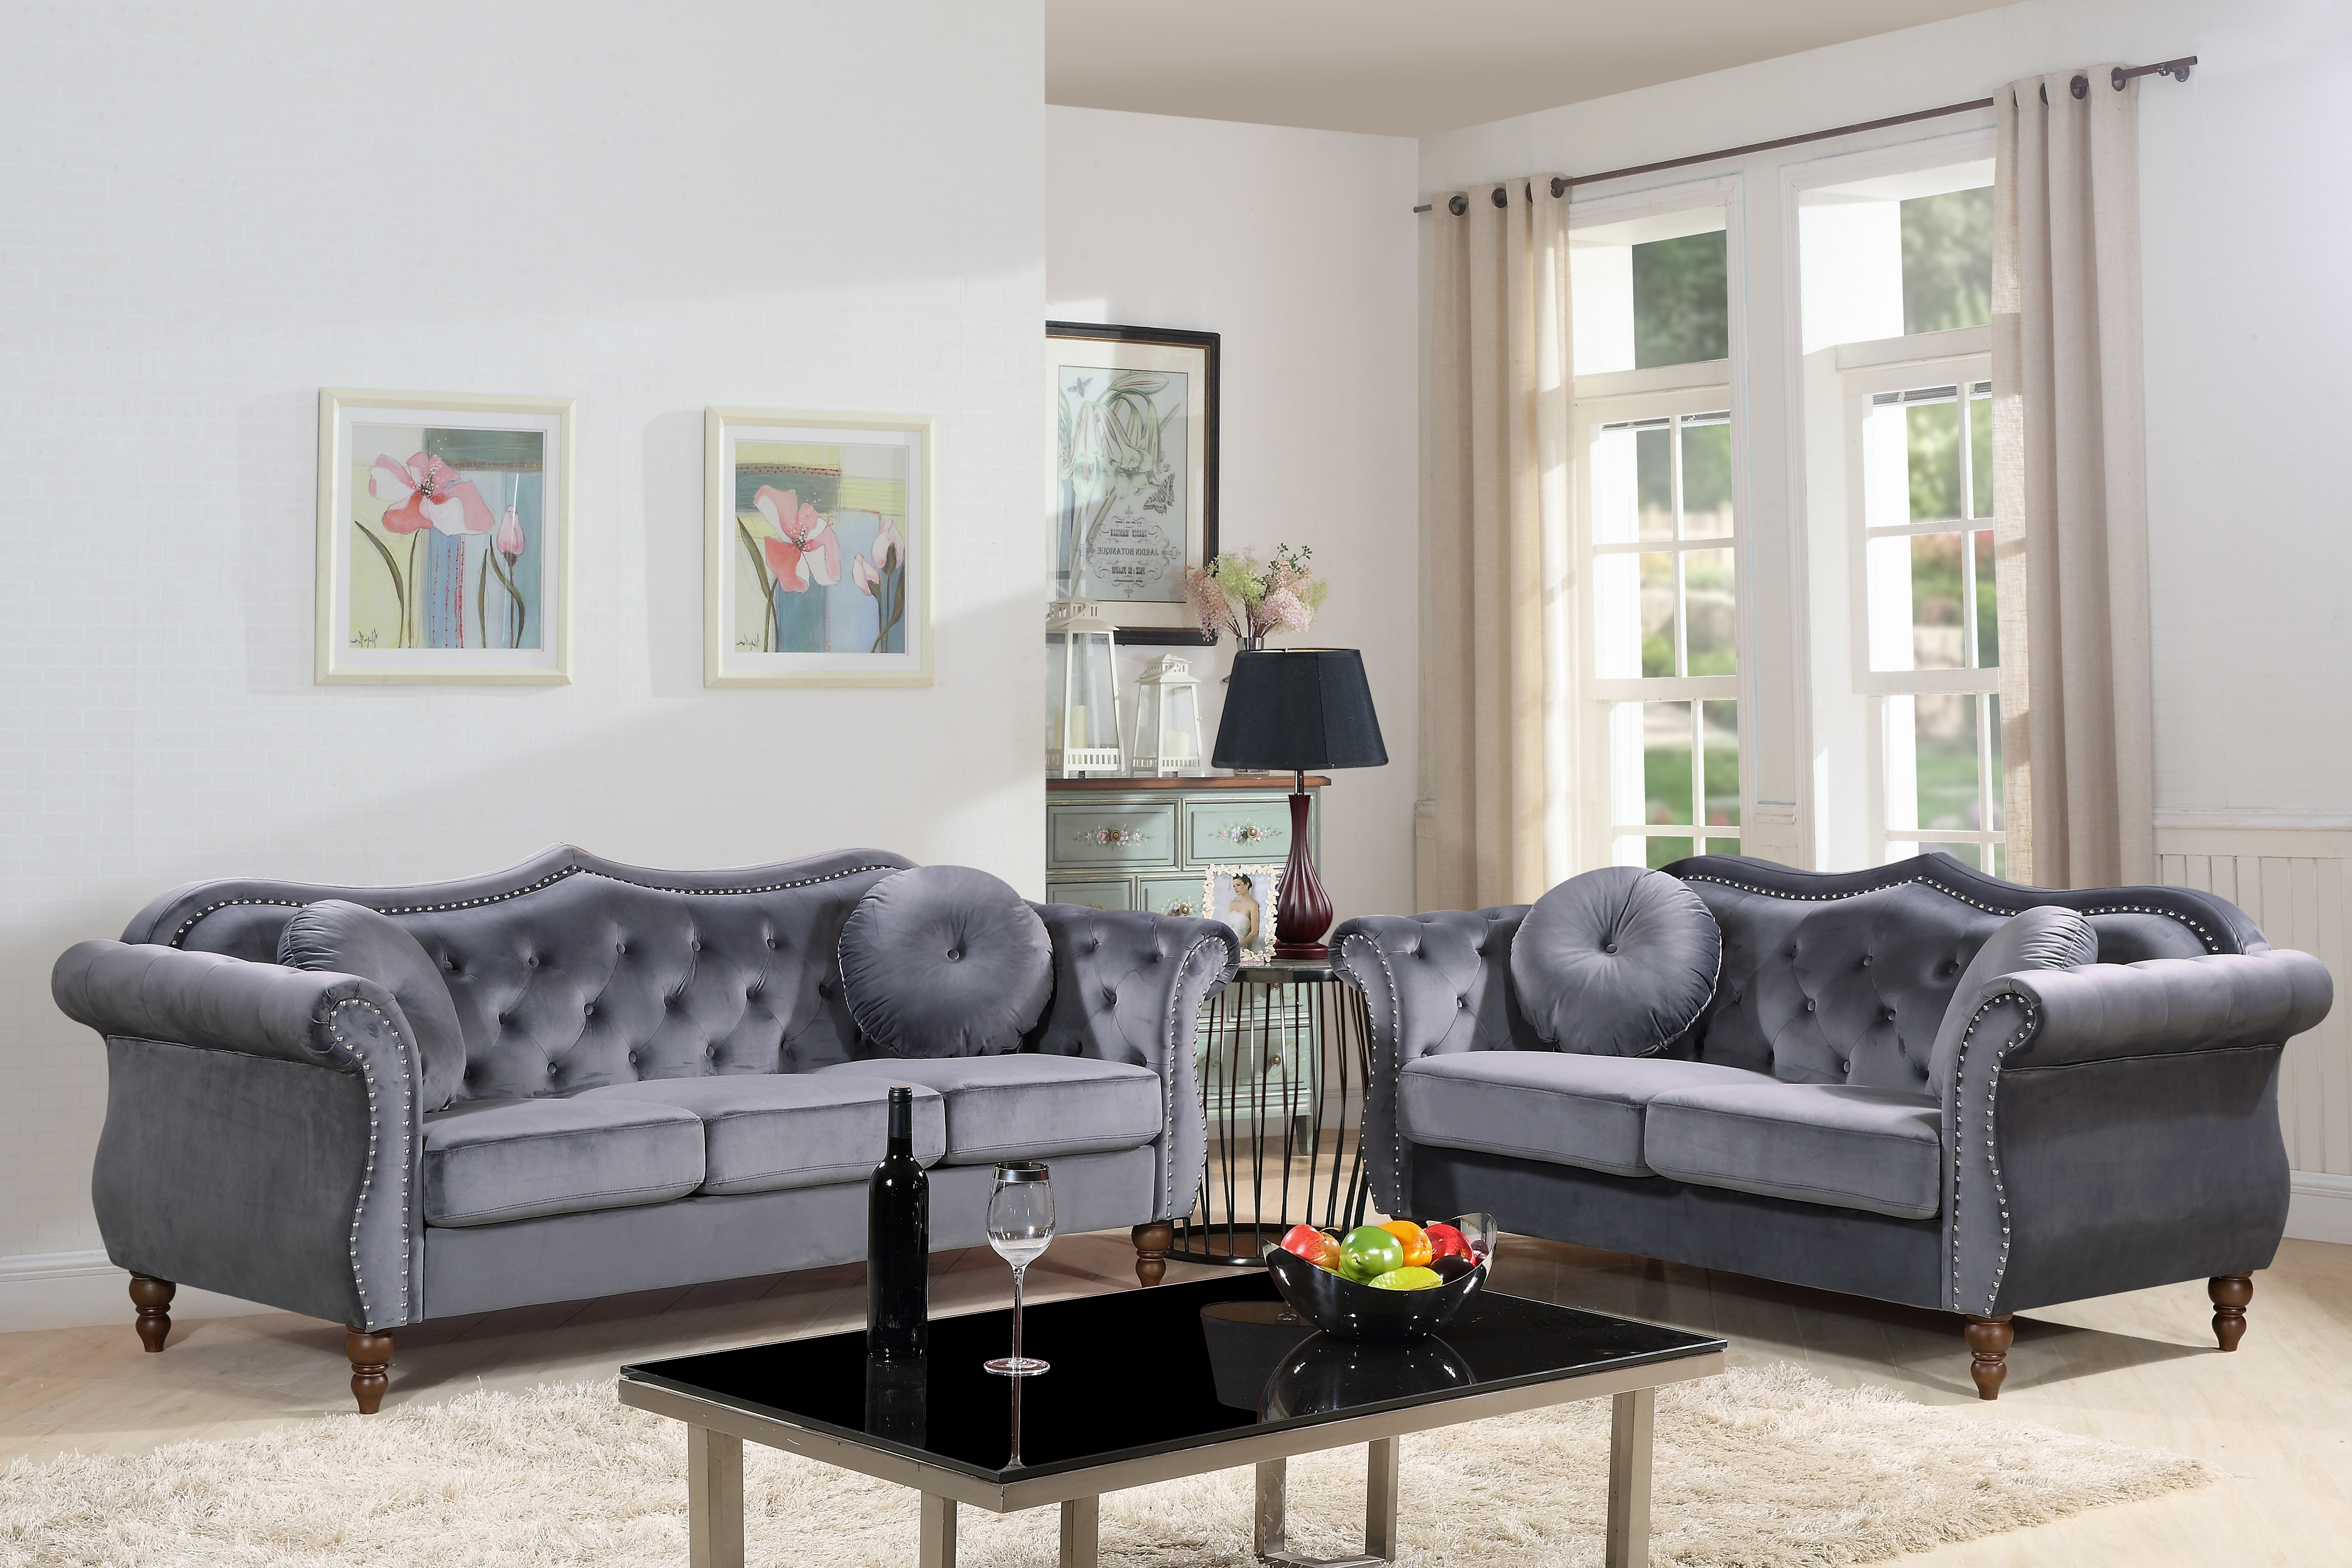 Us Pride Furniture Carbon Classic Nail Head Chesterfield 2 Piece inside 13 Genius Designs of How to Craft Chesterfield Living Room Set